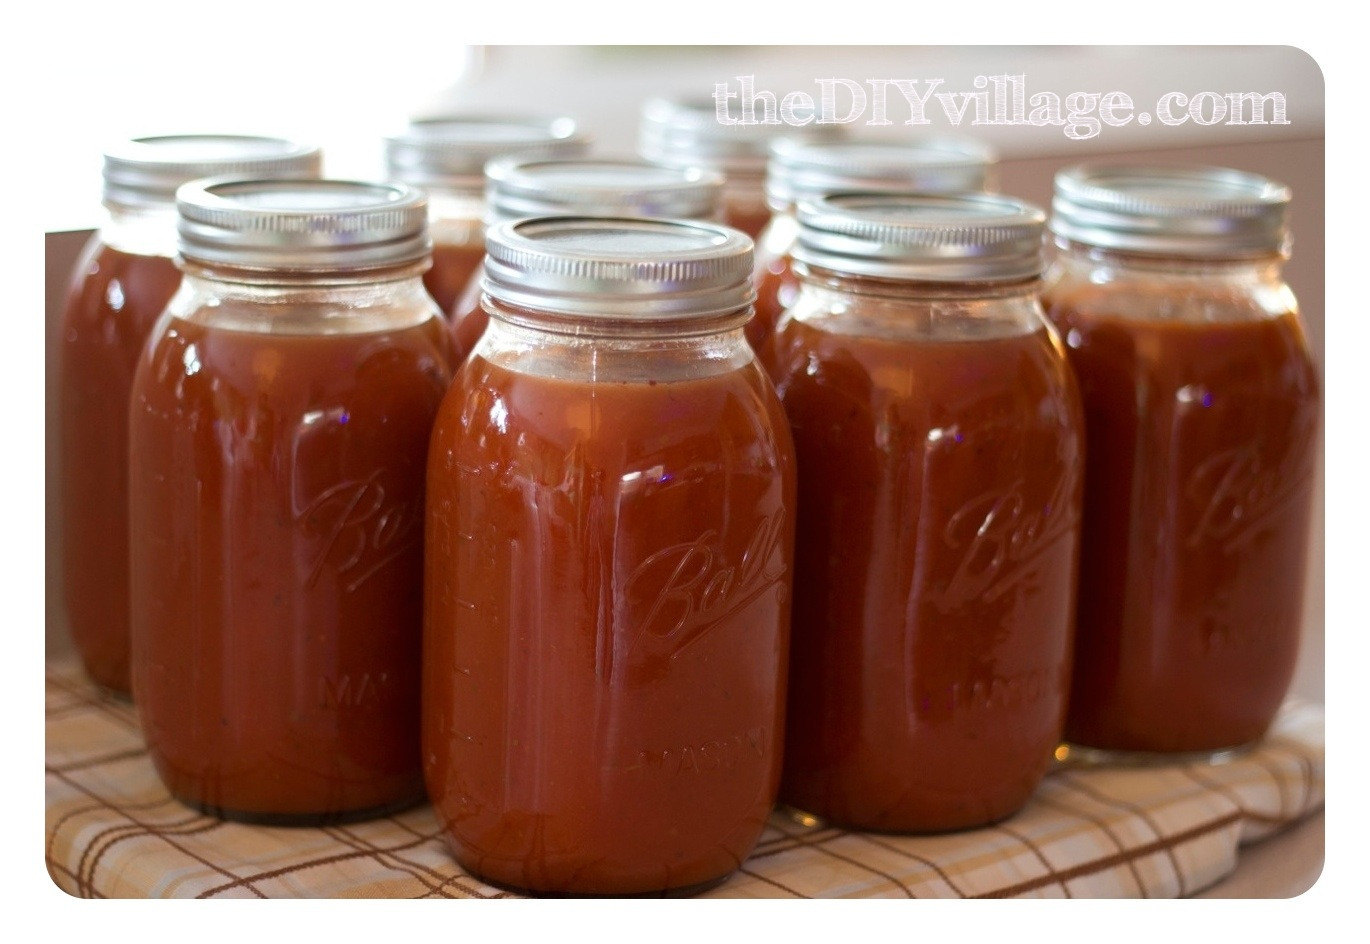 Canned Spaghetti Sauce  Canning Spaghetti Sauce Home Preserving  the DIY village